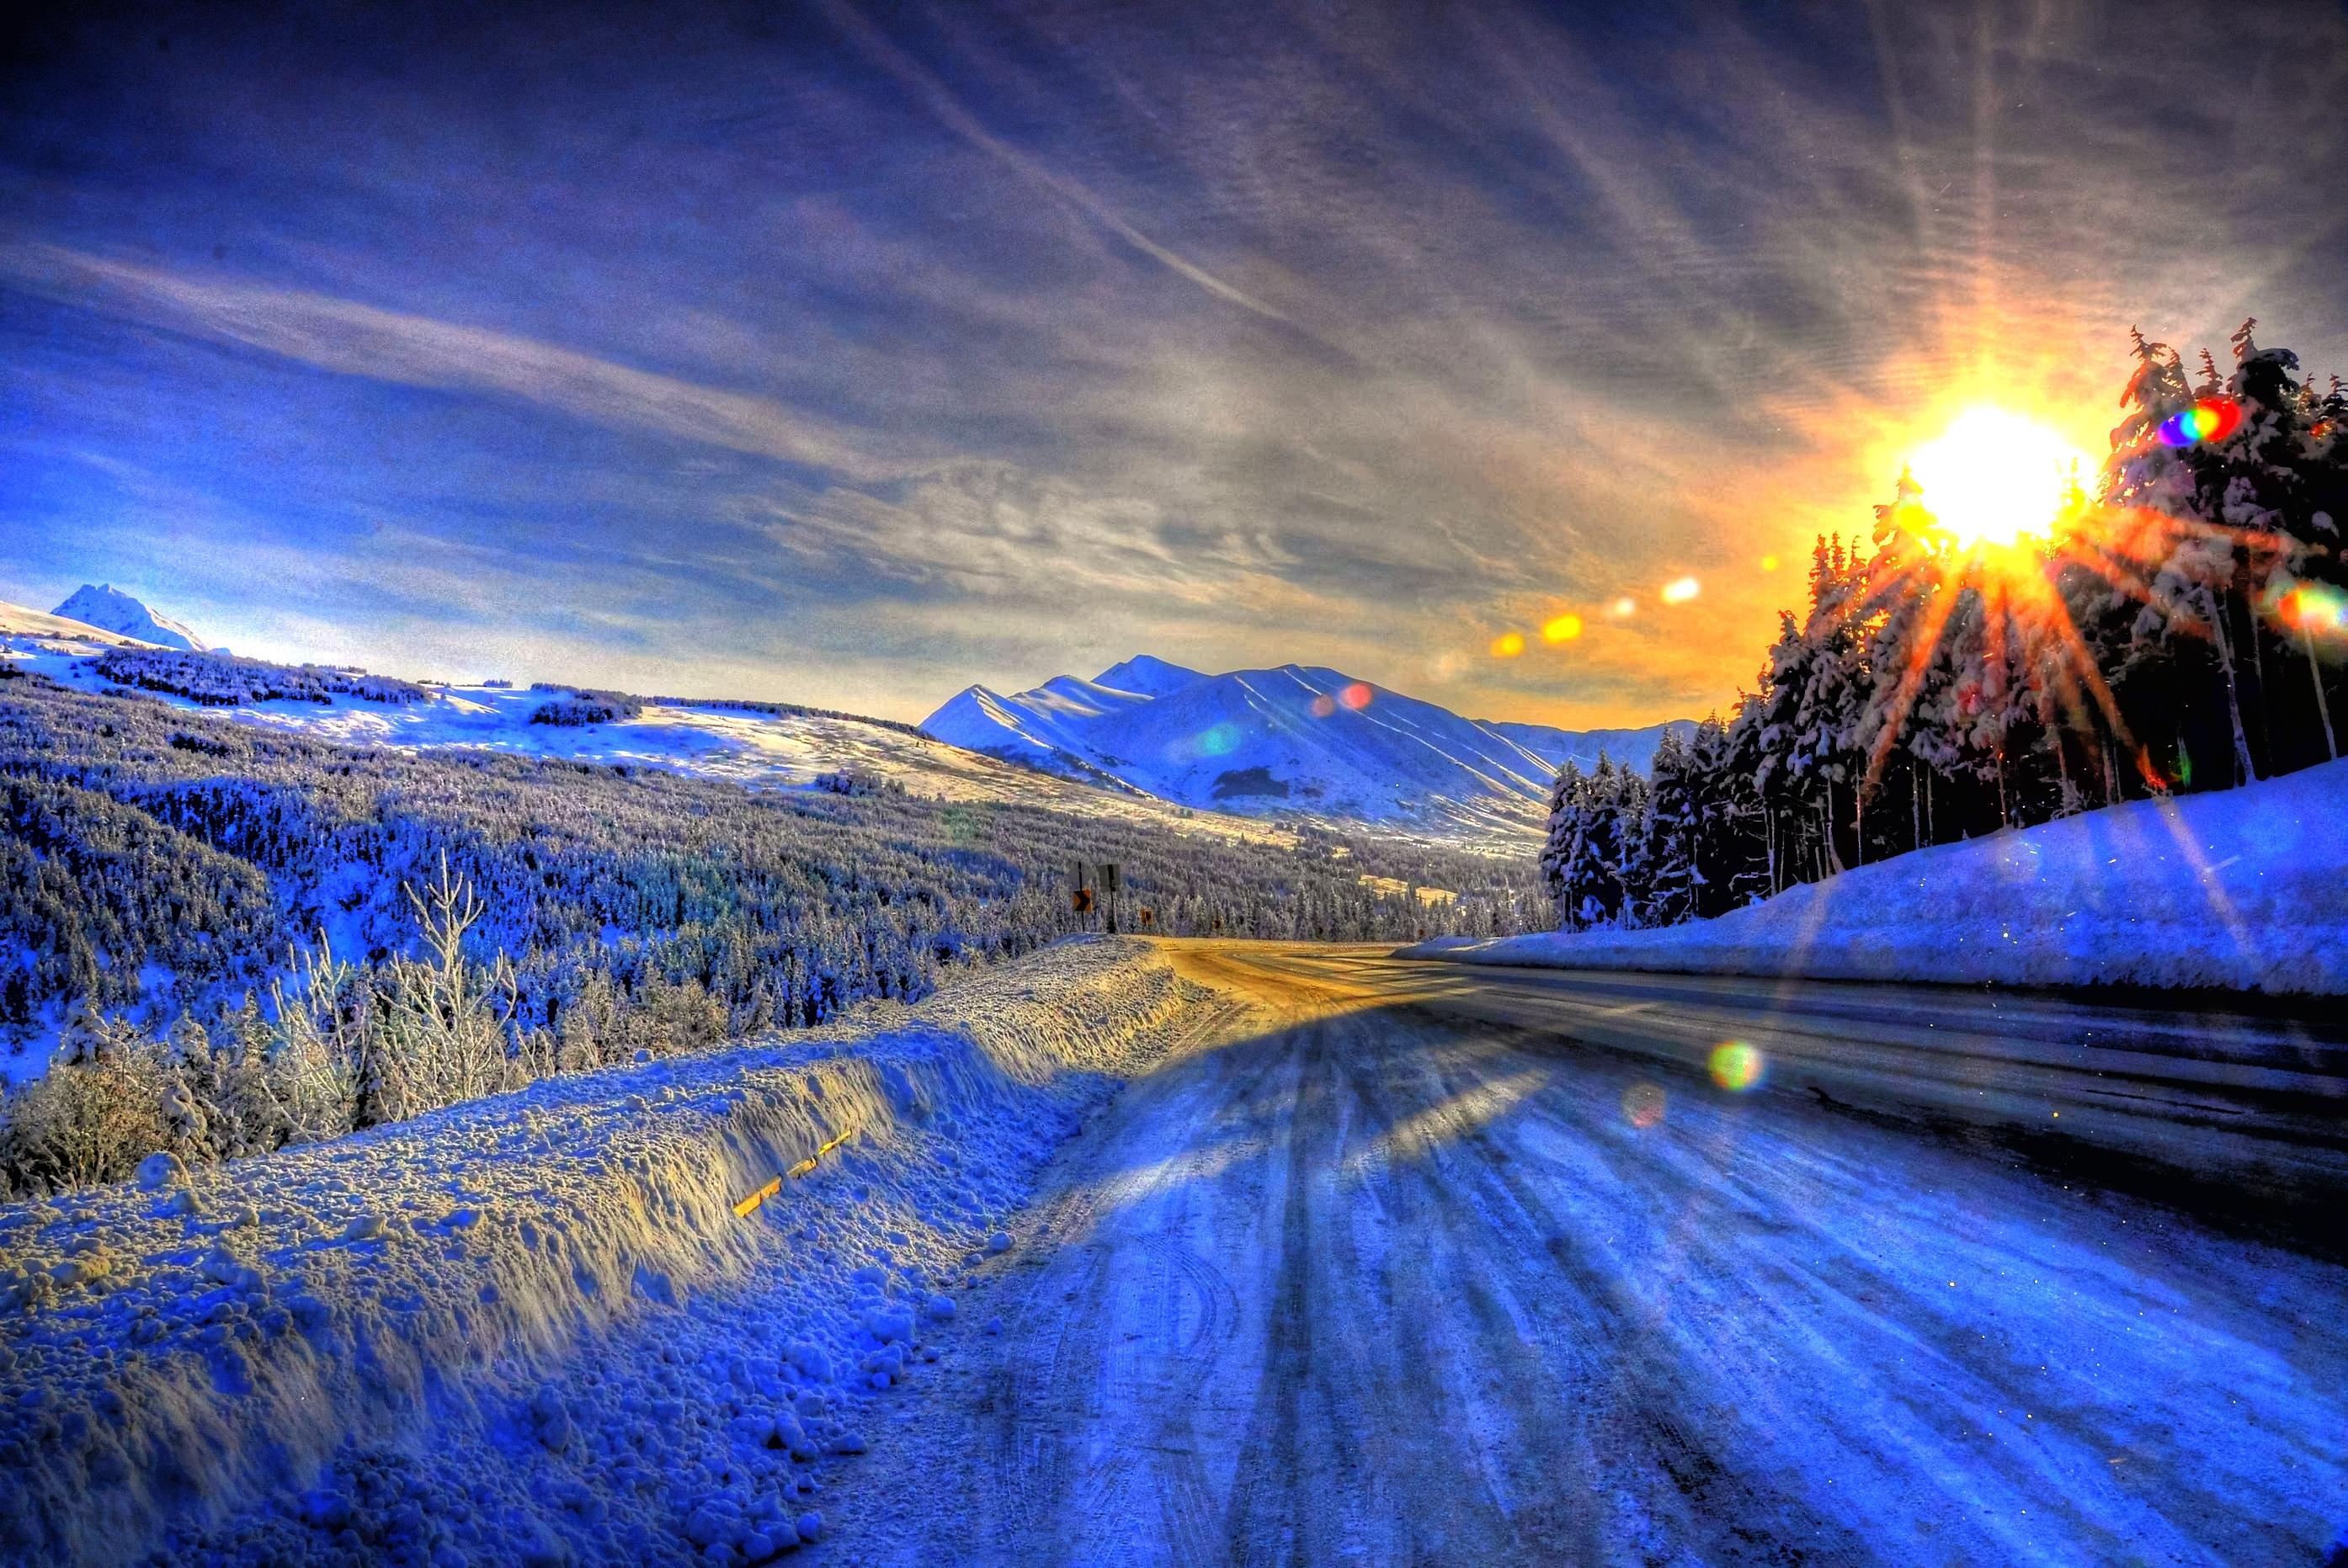 Alaska winter wallpaper wallpaper 4 brain chase for Paesaggi bellissimi per desktop